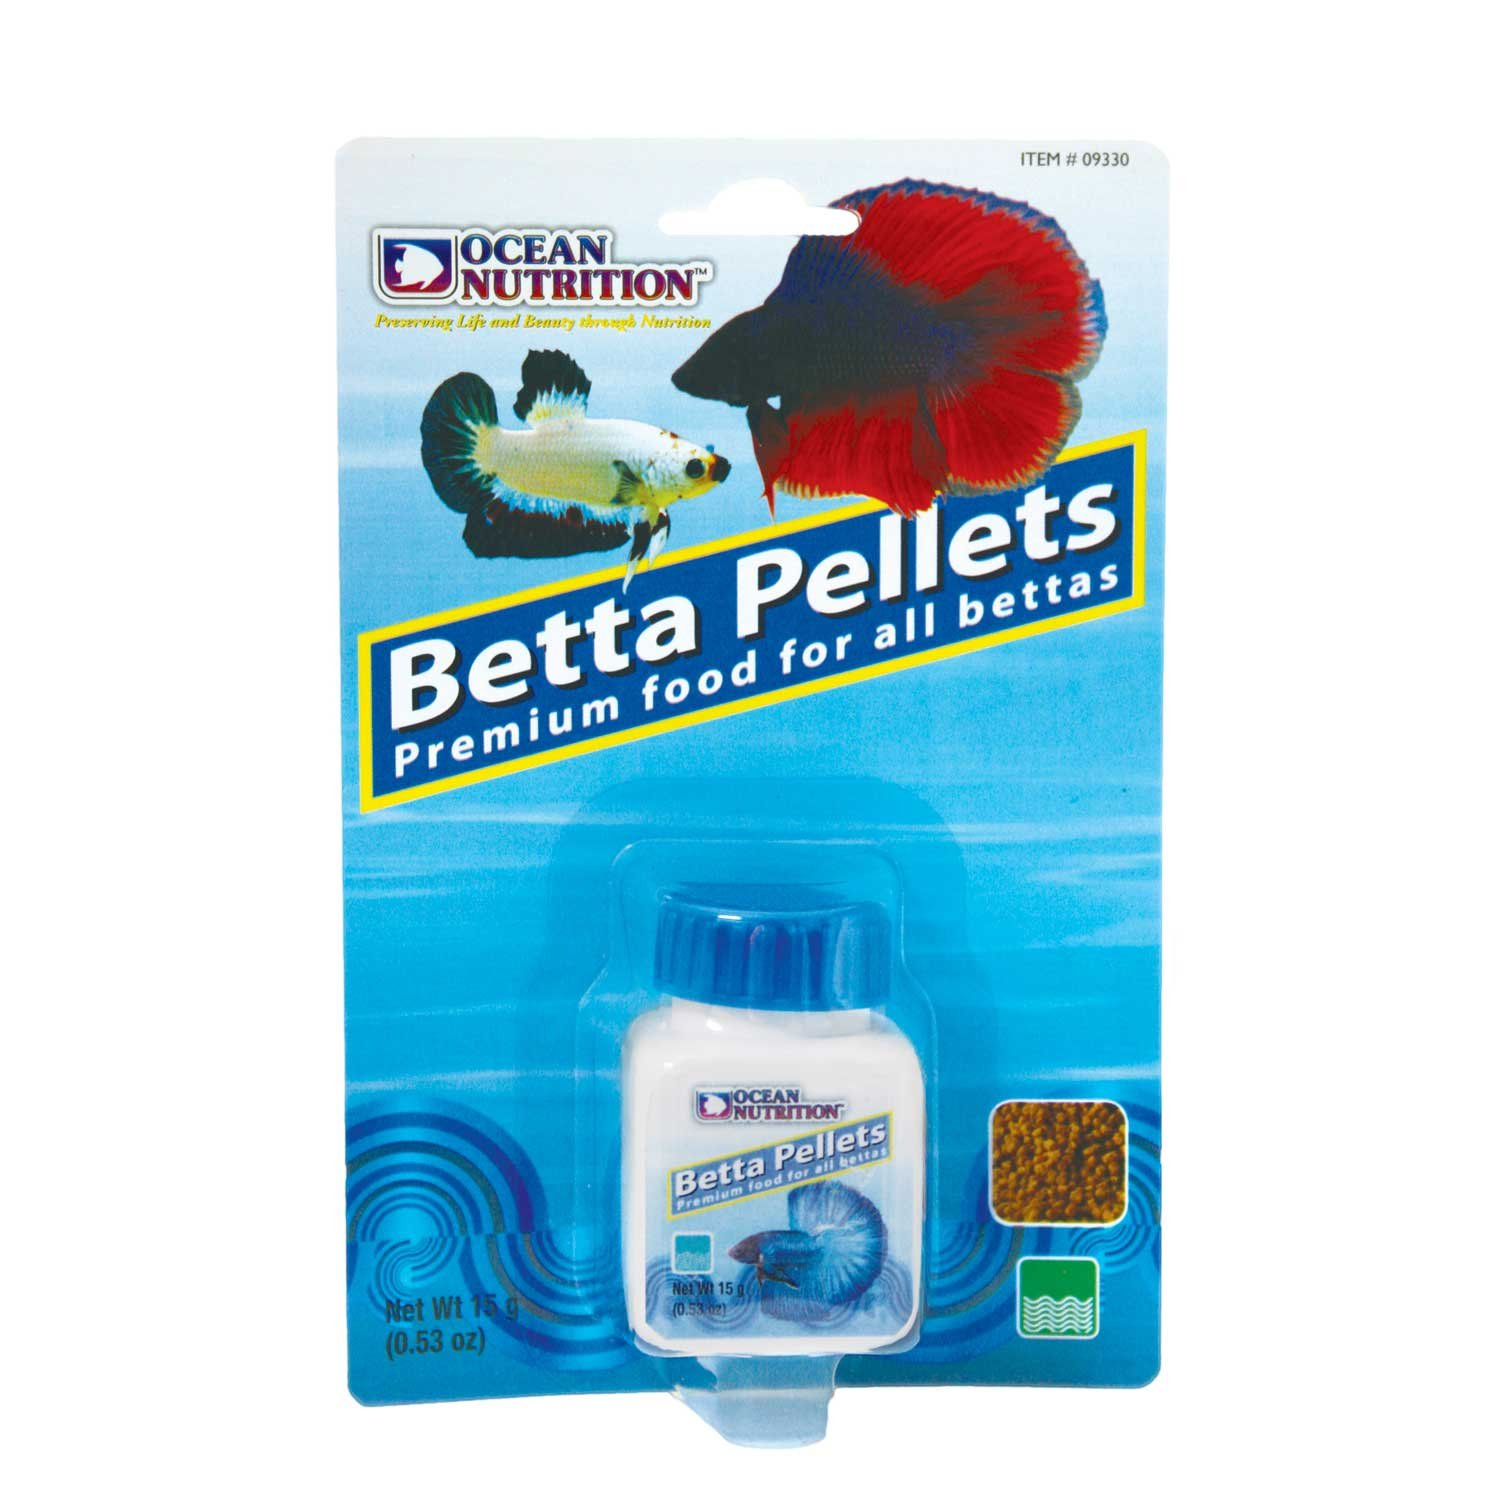 Ocean nutrition betta pellets petco for Food for betta fish